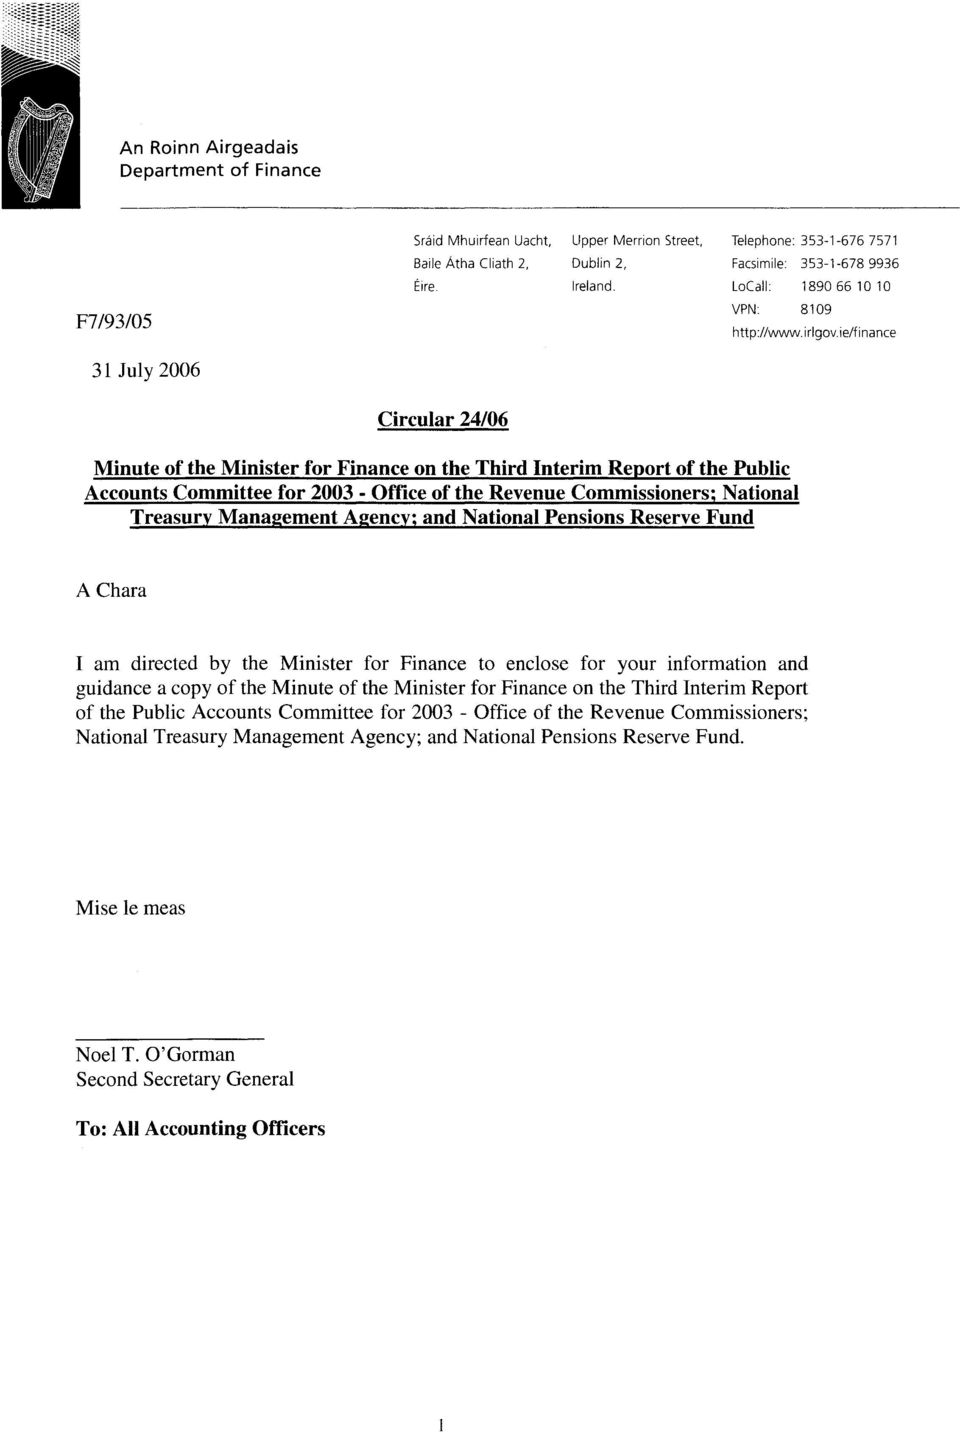 ie/fi nance Minute of the Minister for Finance on the Third Interim Report of the Public Accounts Committee for 2003 - Office of the Revenue Commissioners; National Treasury Management Agency; and